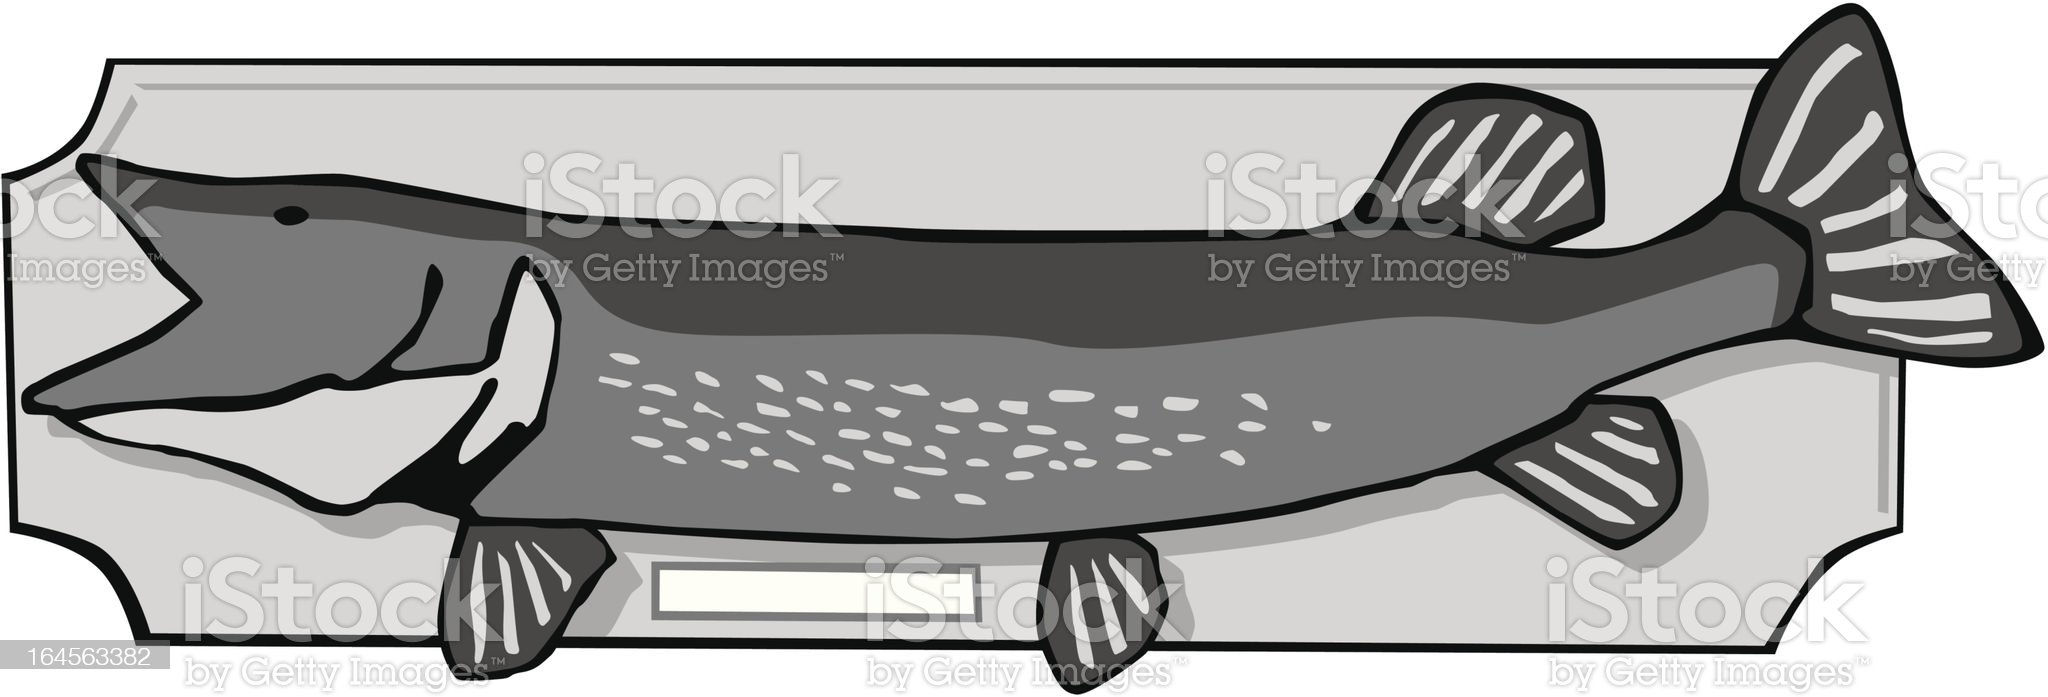 Stuffed Fish Trophy royalty-free stock vector art